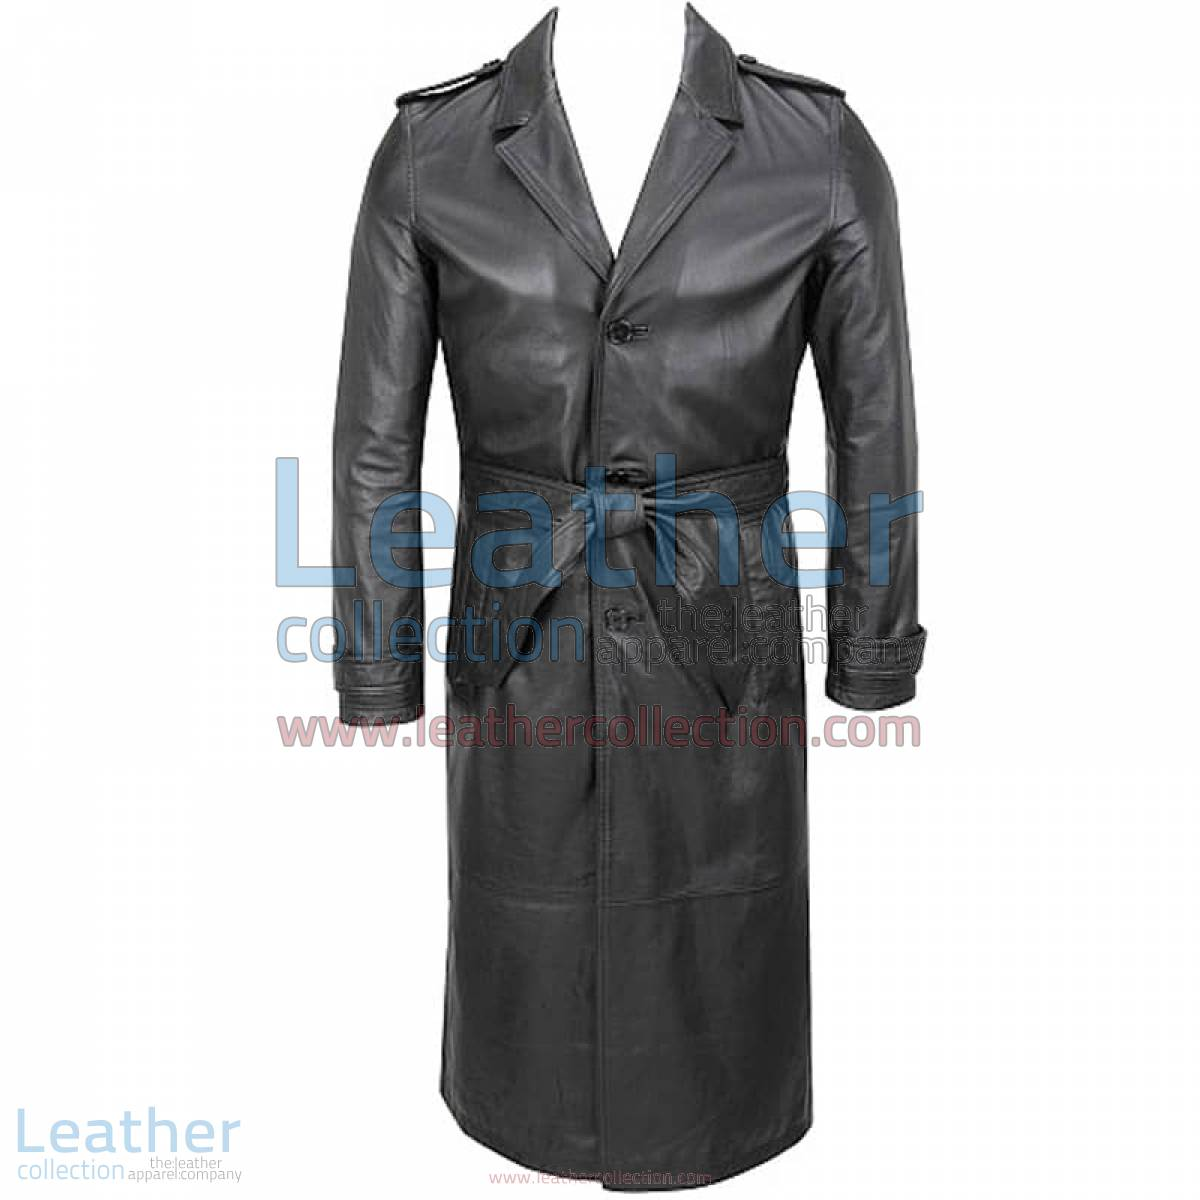 Belted Classic Leather Long Trench Coat | leather trench coat